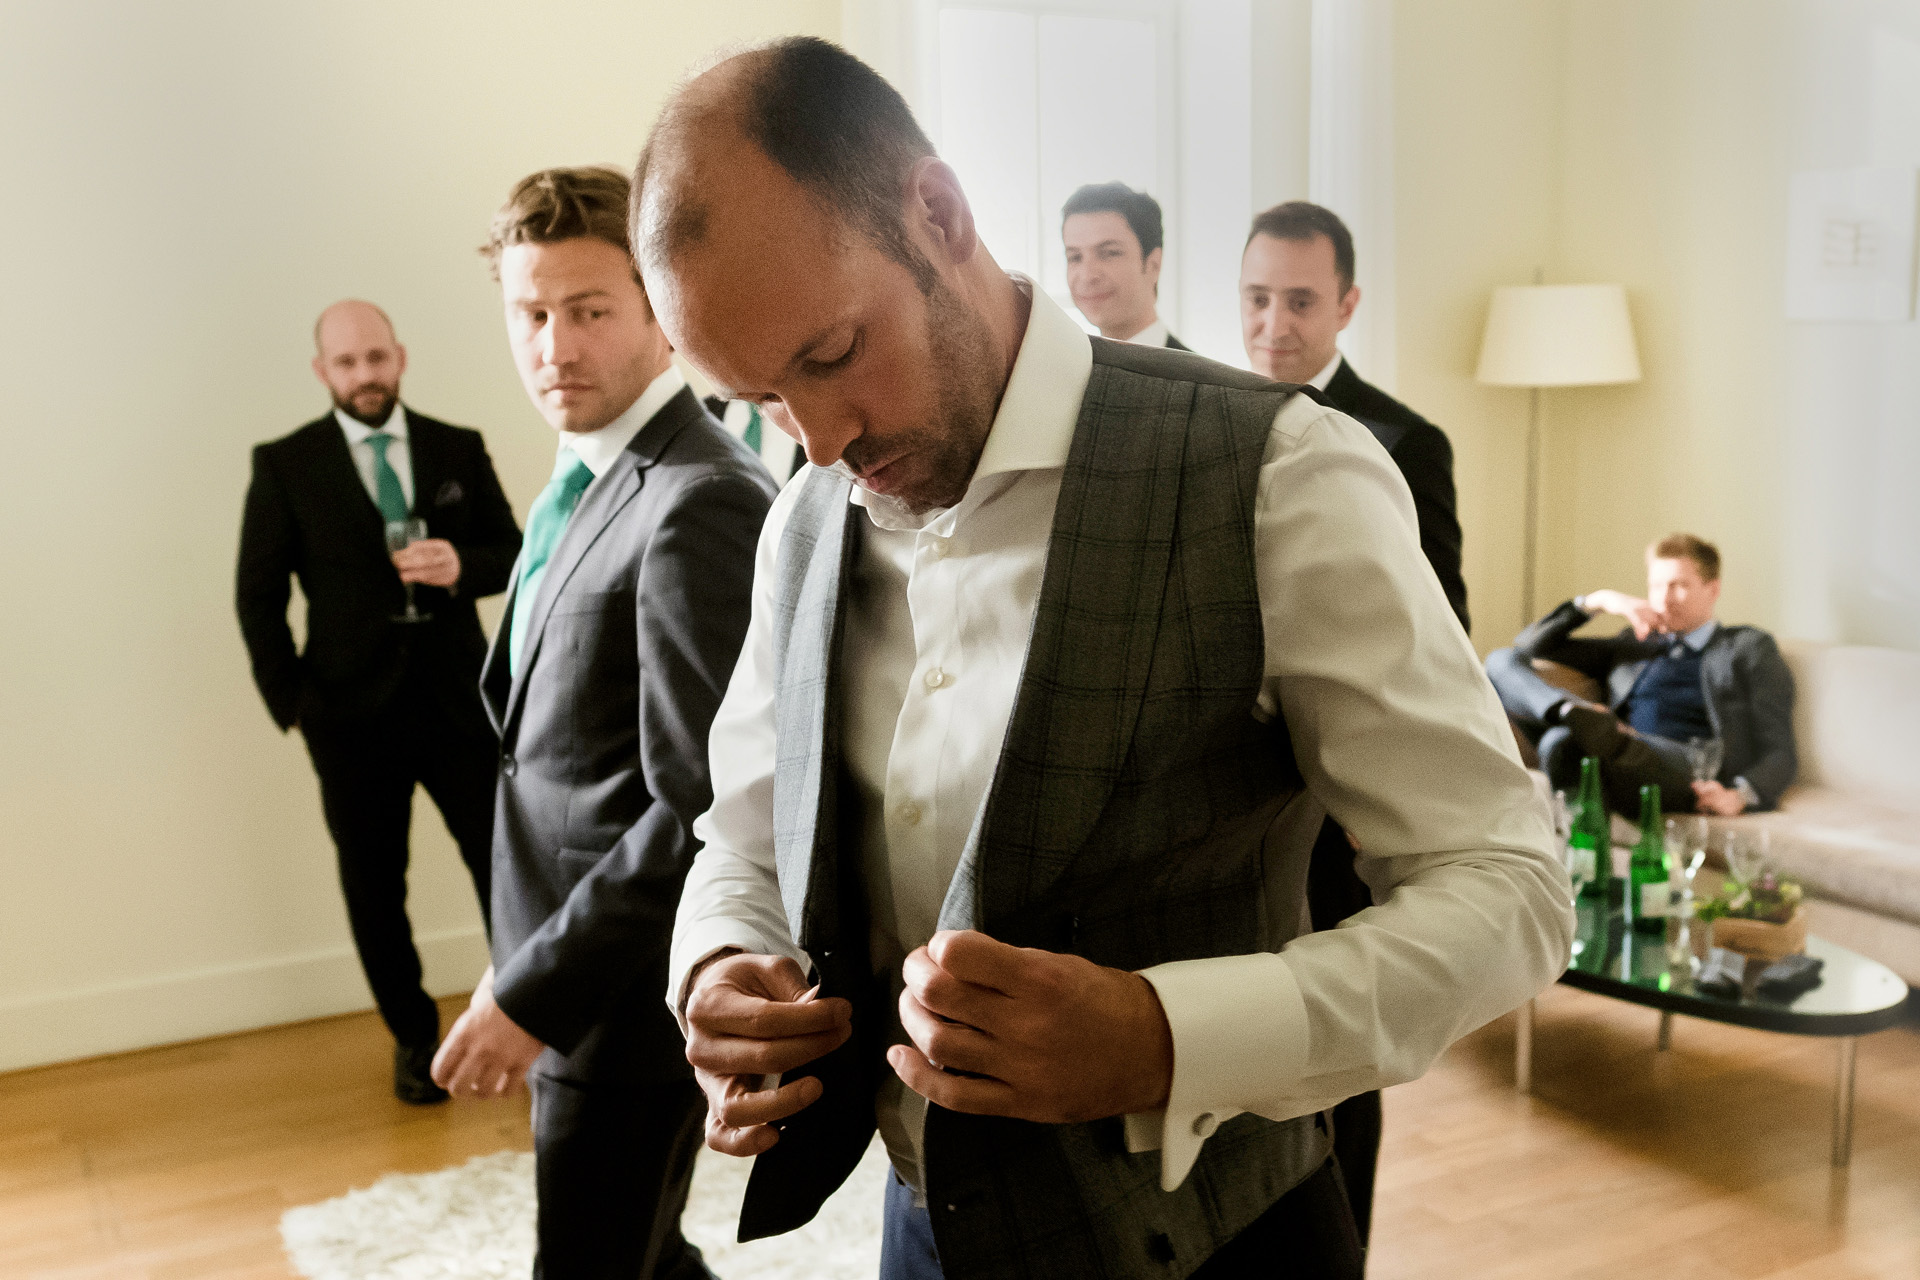 Bosphorus, Istanbul - Ajia Hotel Wedding Photography | The groom is getting dressed in his room where There were 6 groomsmen